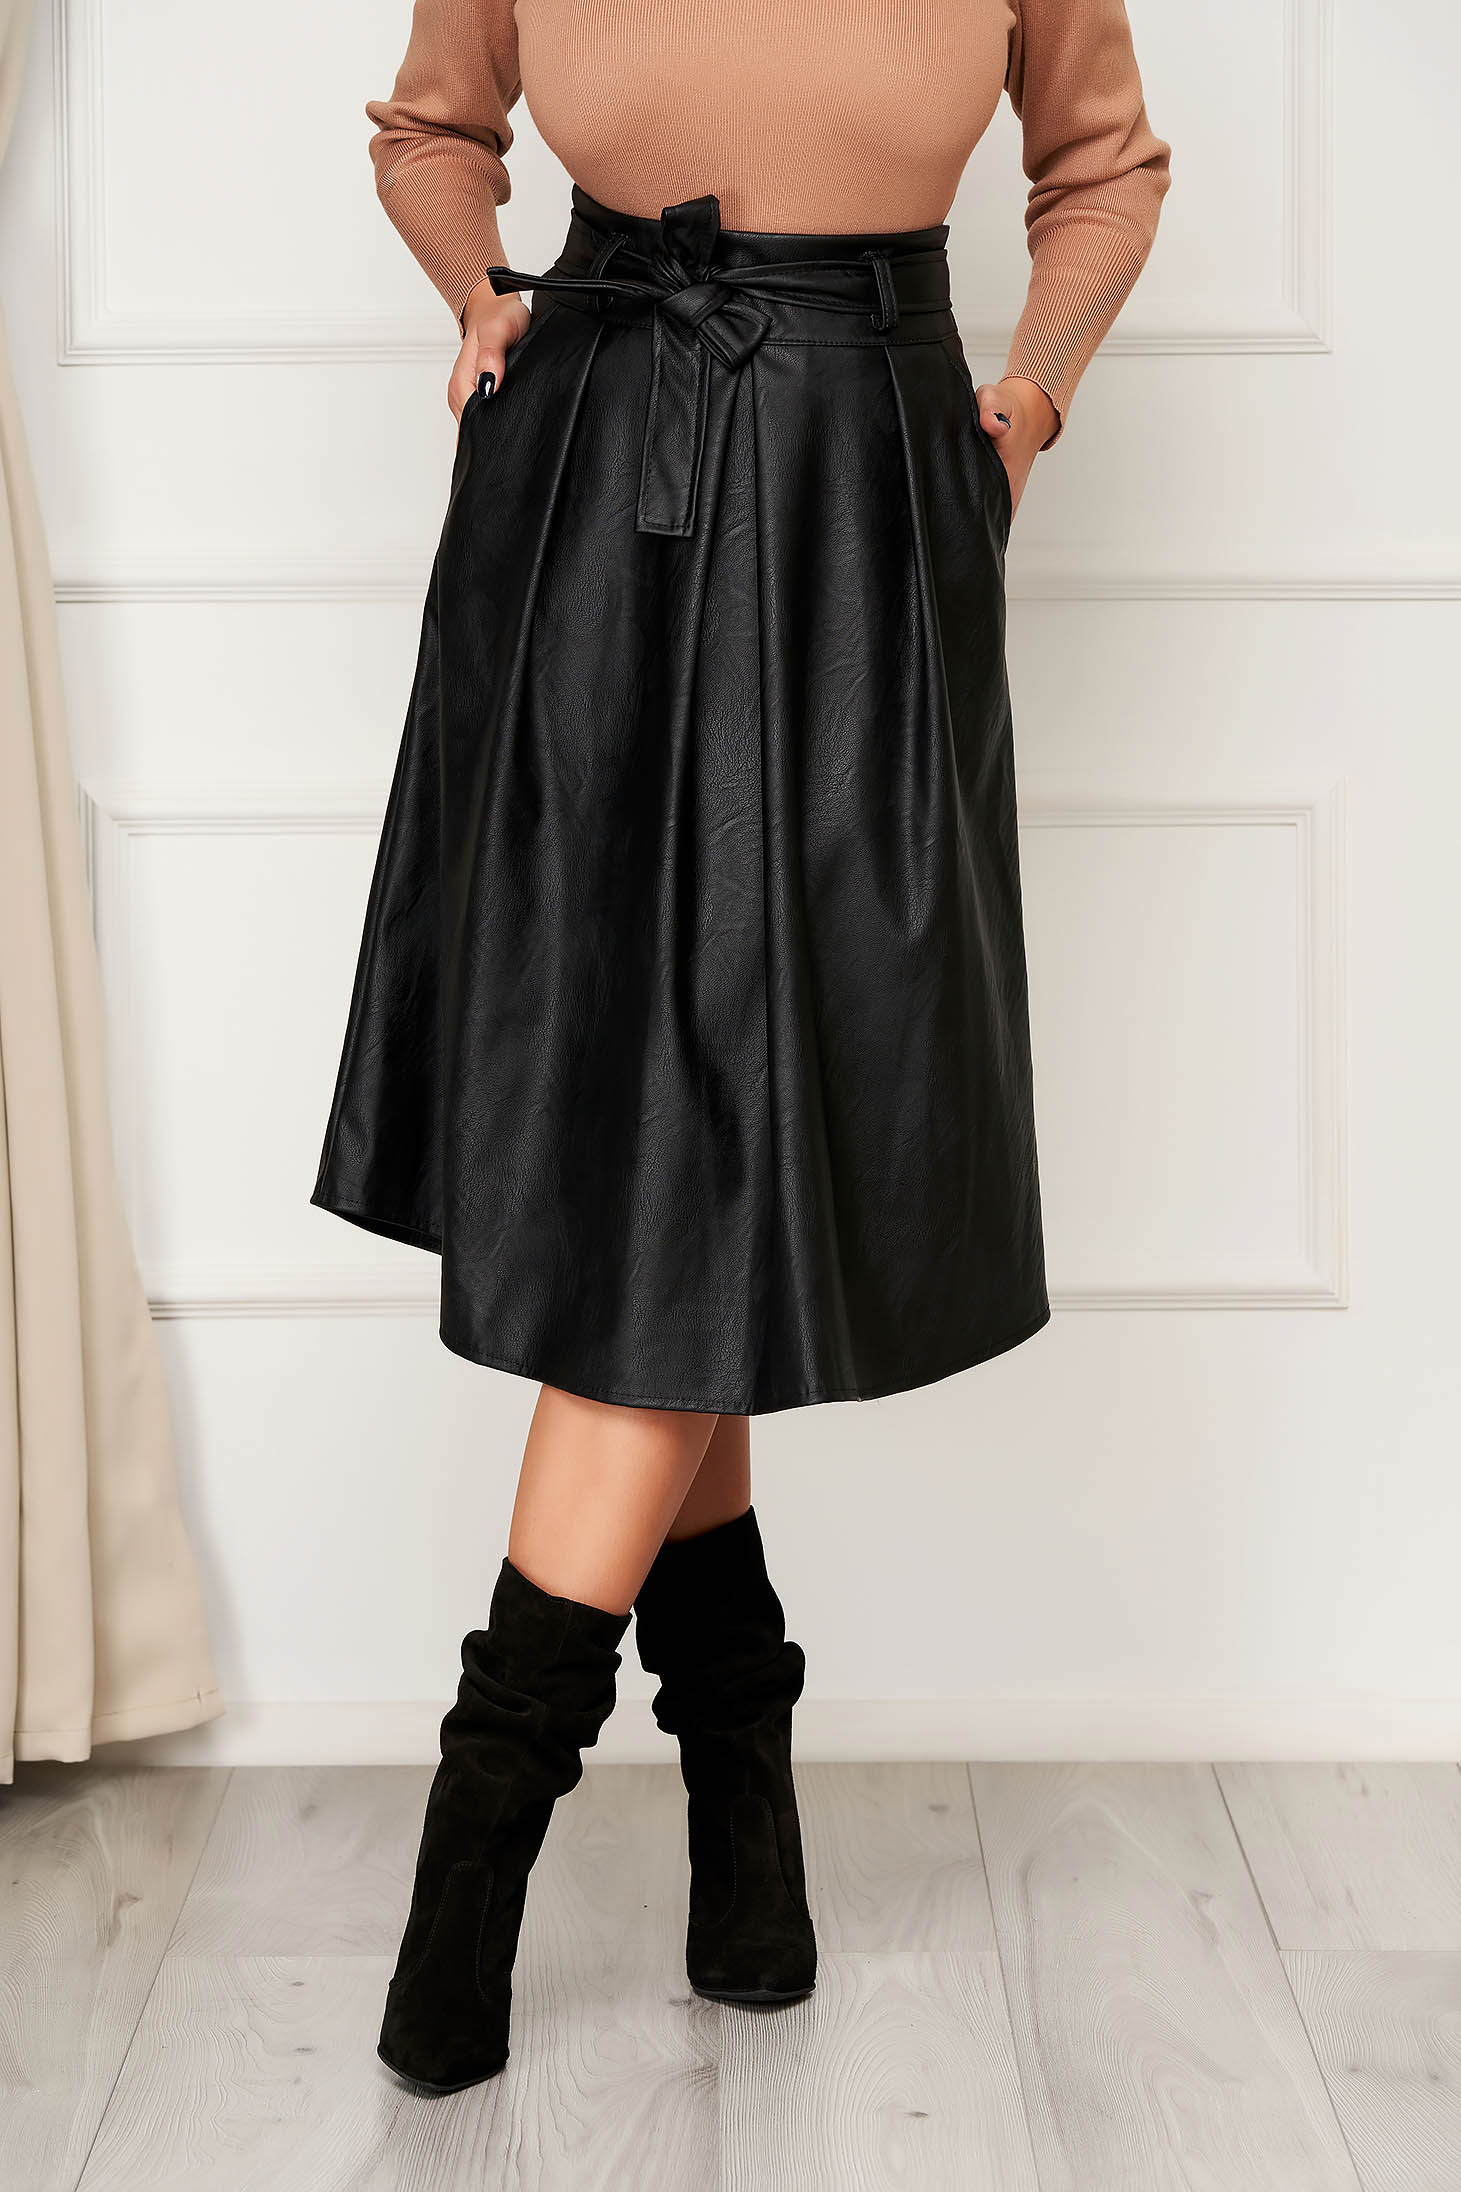 Black skirt casual midi cloche with pockets from ecological leather